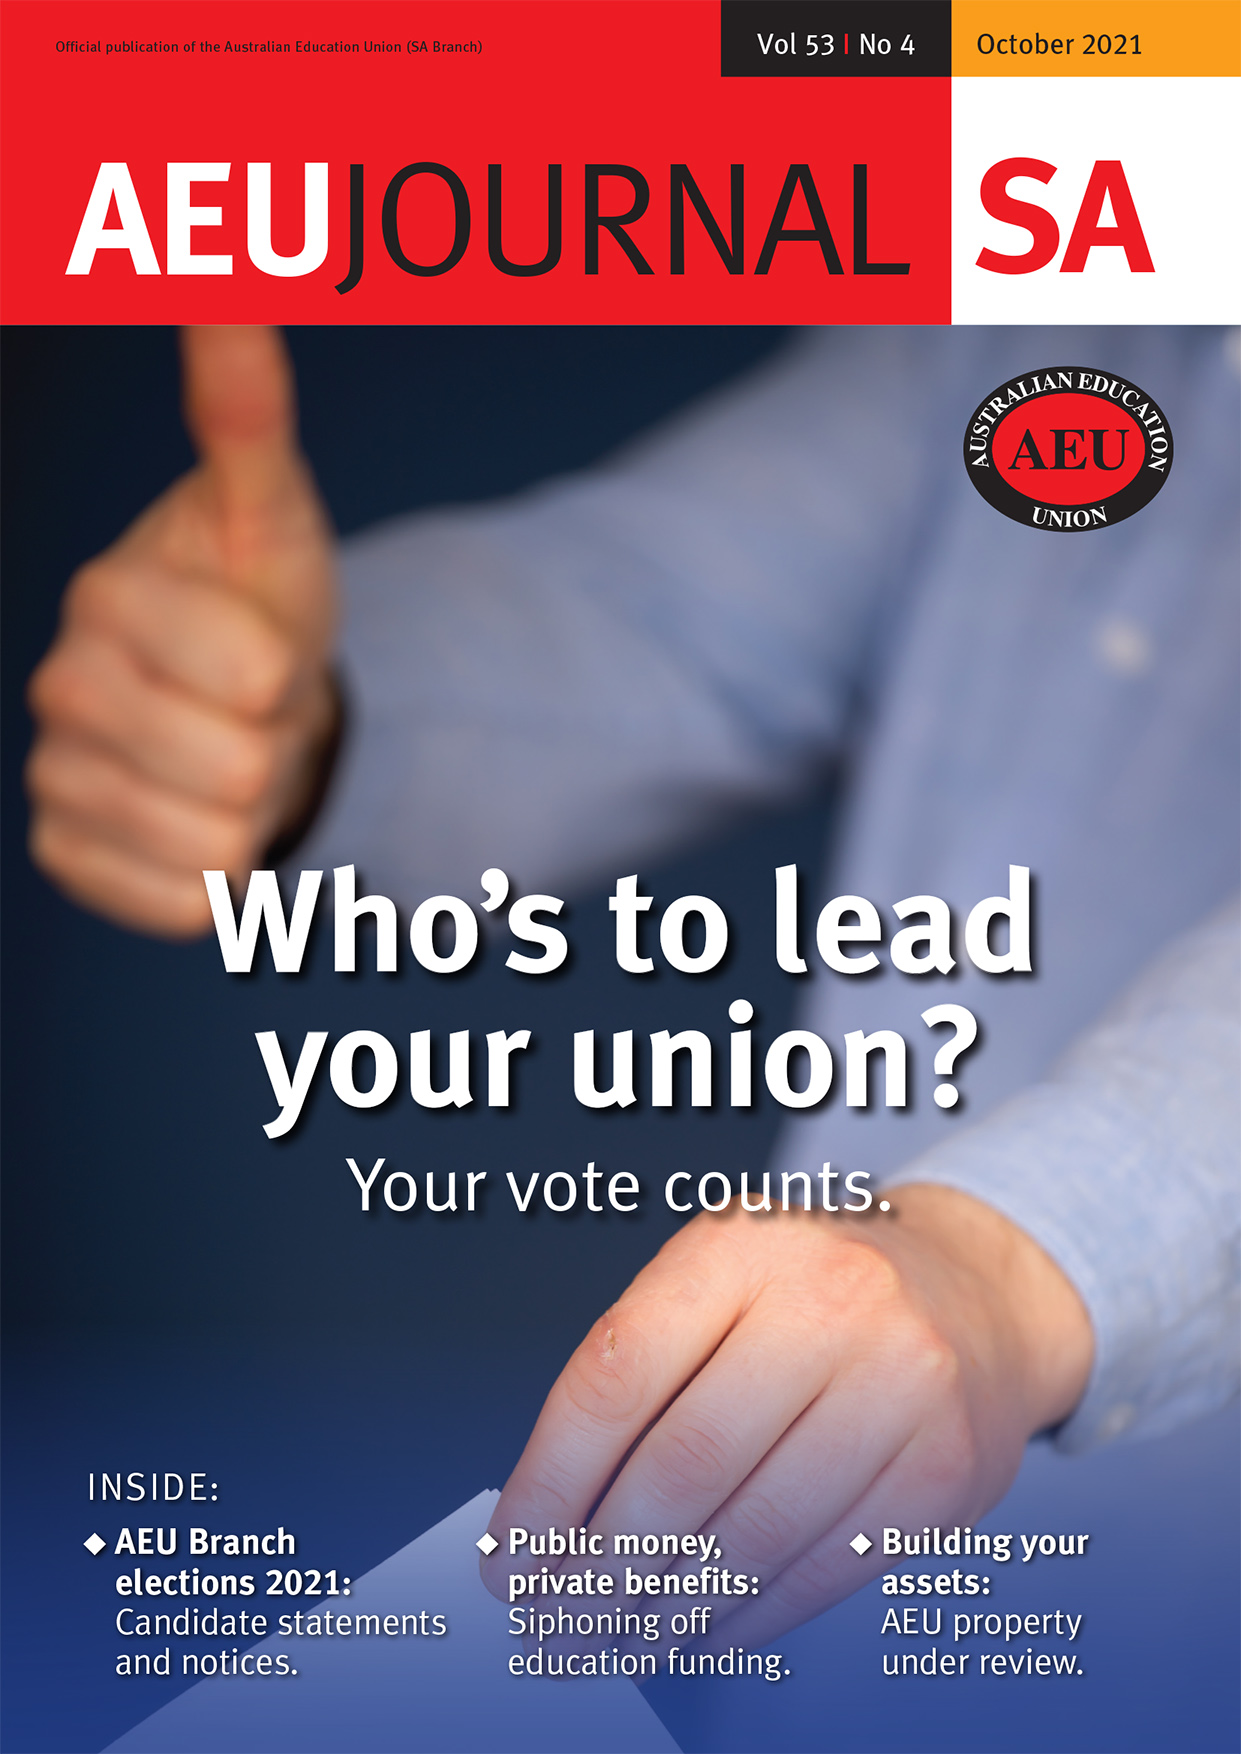 Cover of October AEU Journal